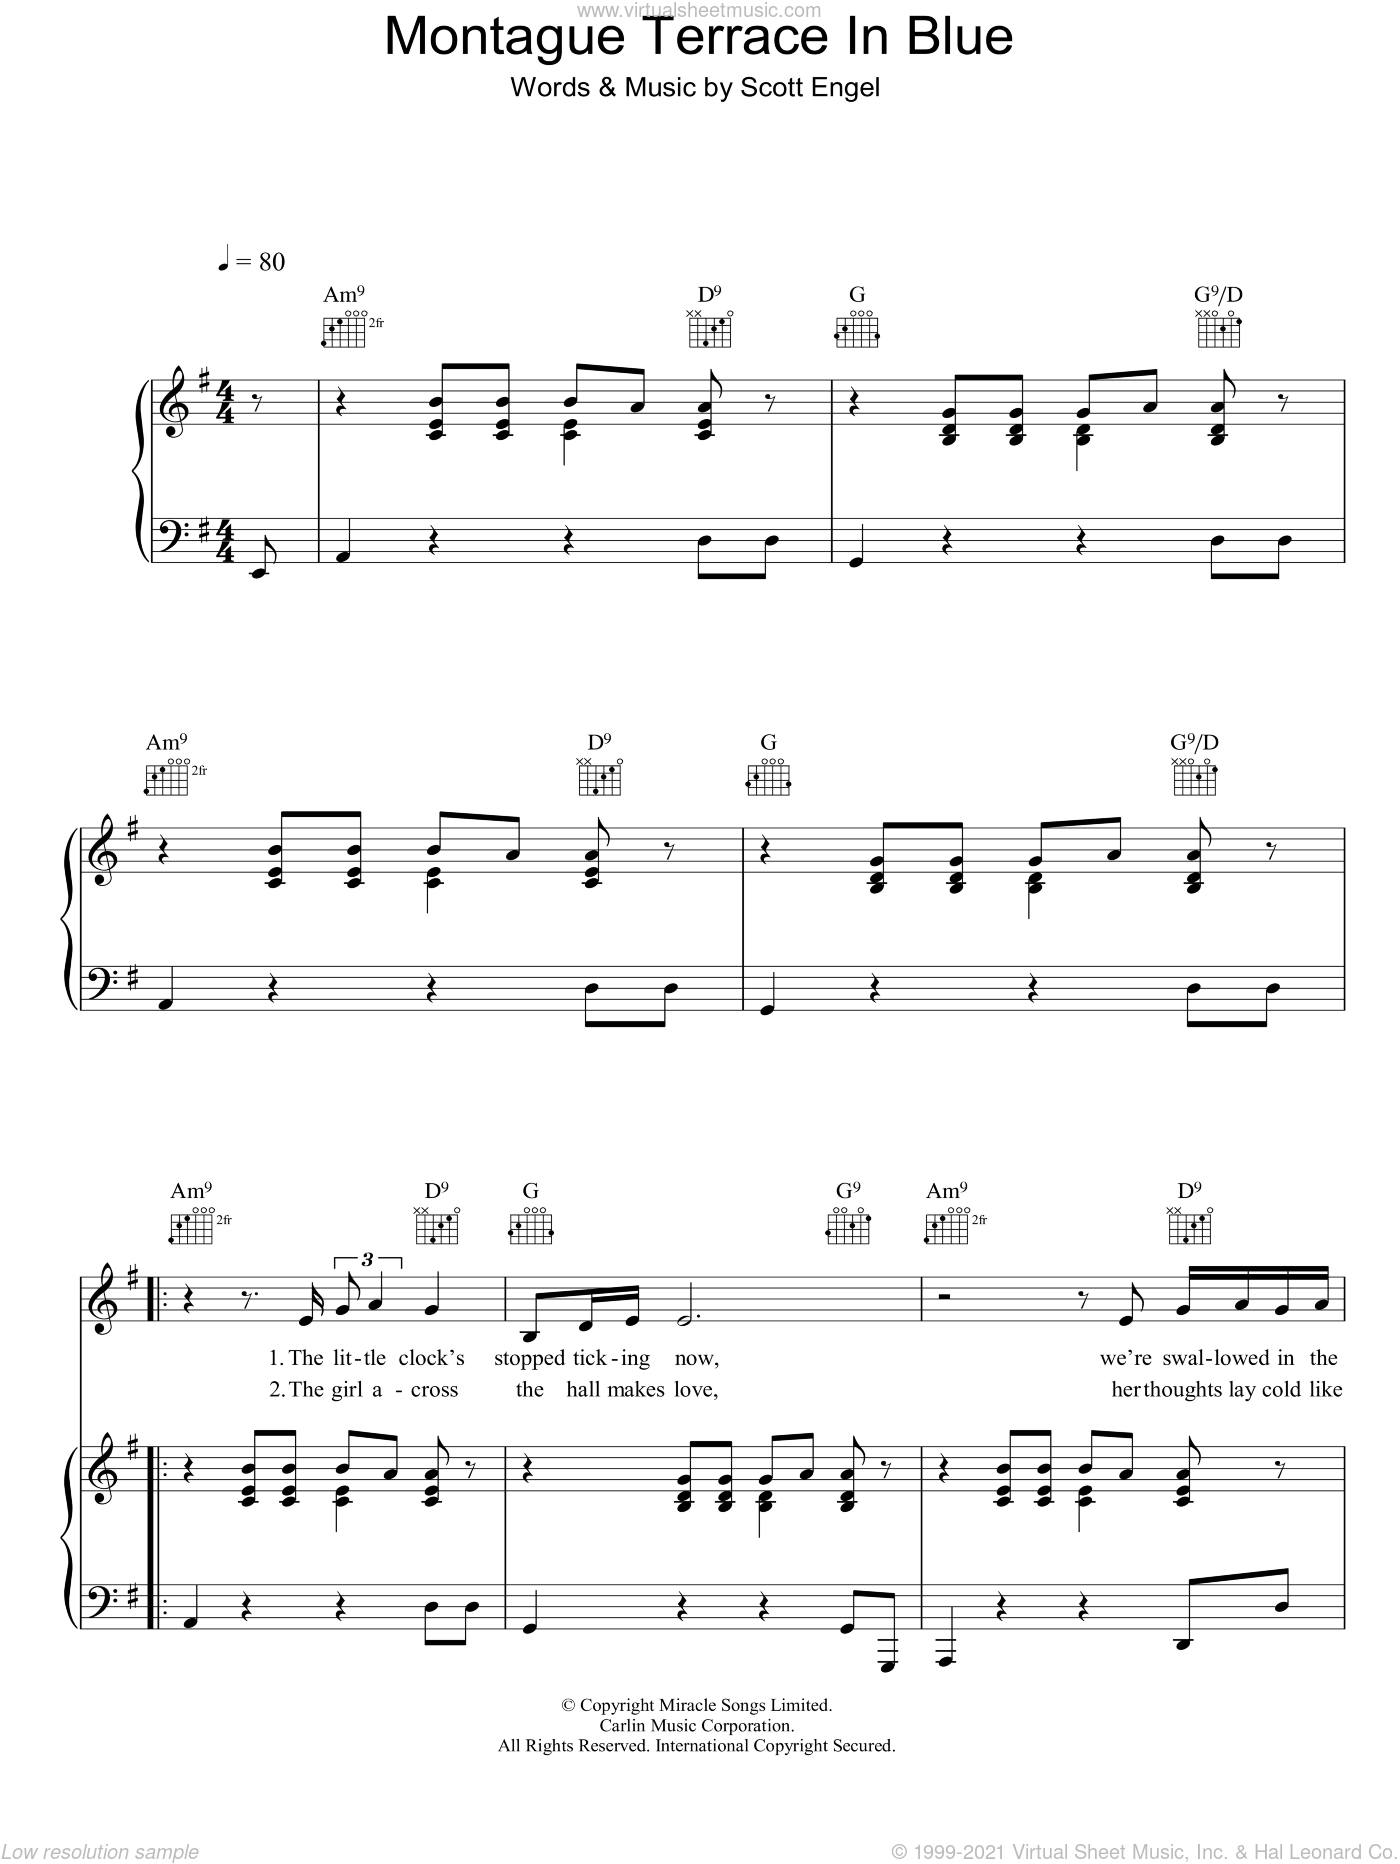 Montague Terrace In Blue sheet music for voice, piano or guitar by Scott Walker and Scott Engel, intermediate skill level